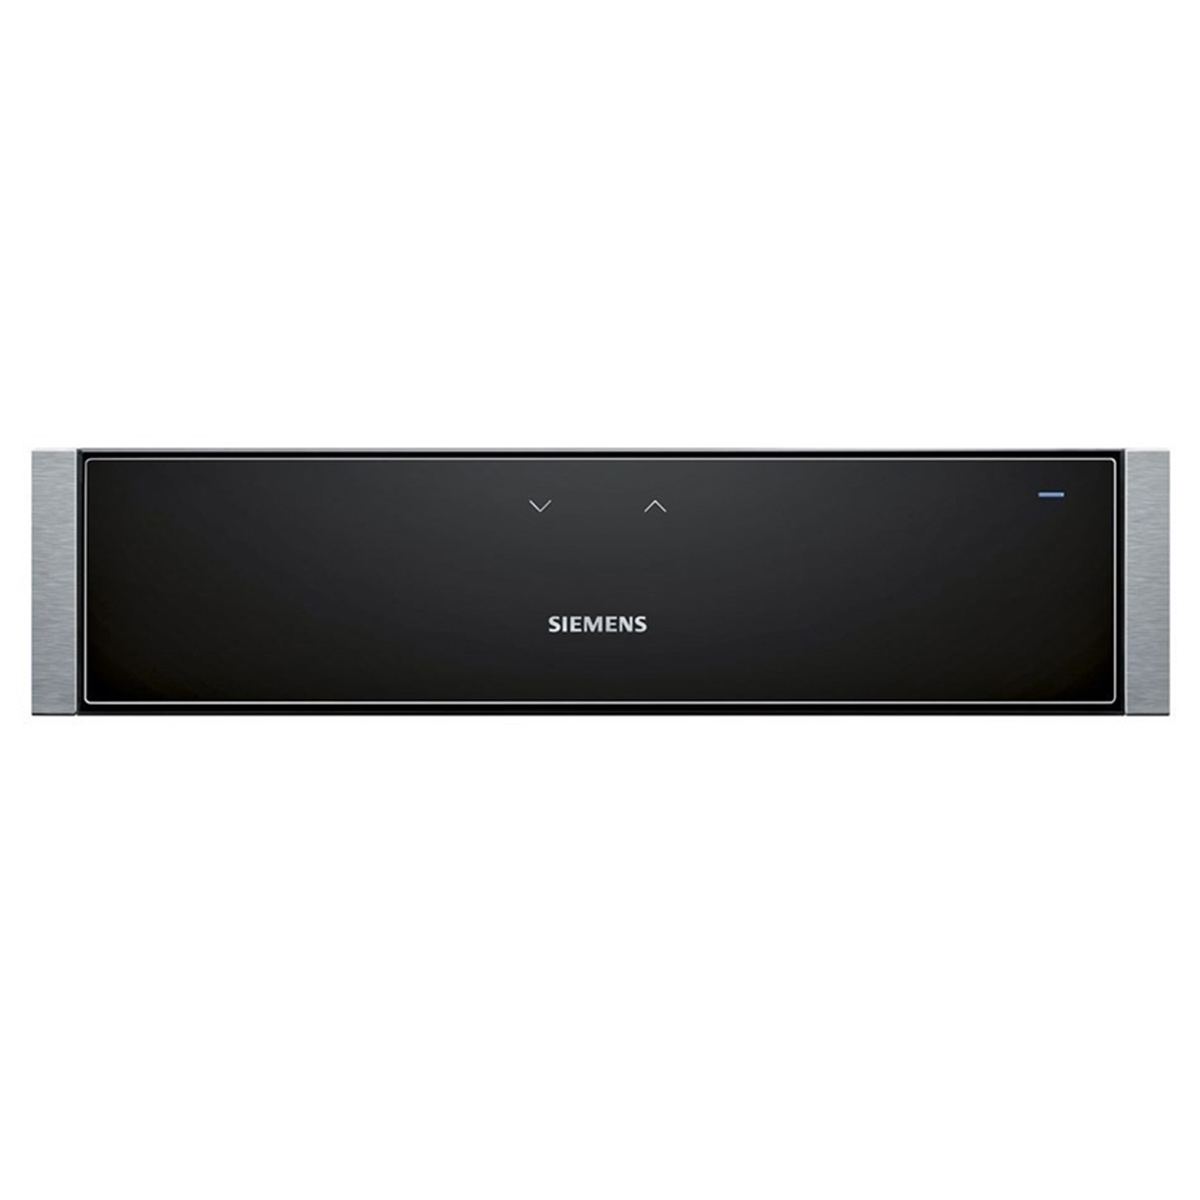 Siemens HW1405P2B 14cm Stainless Steel Warming Drawer